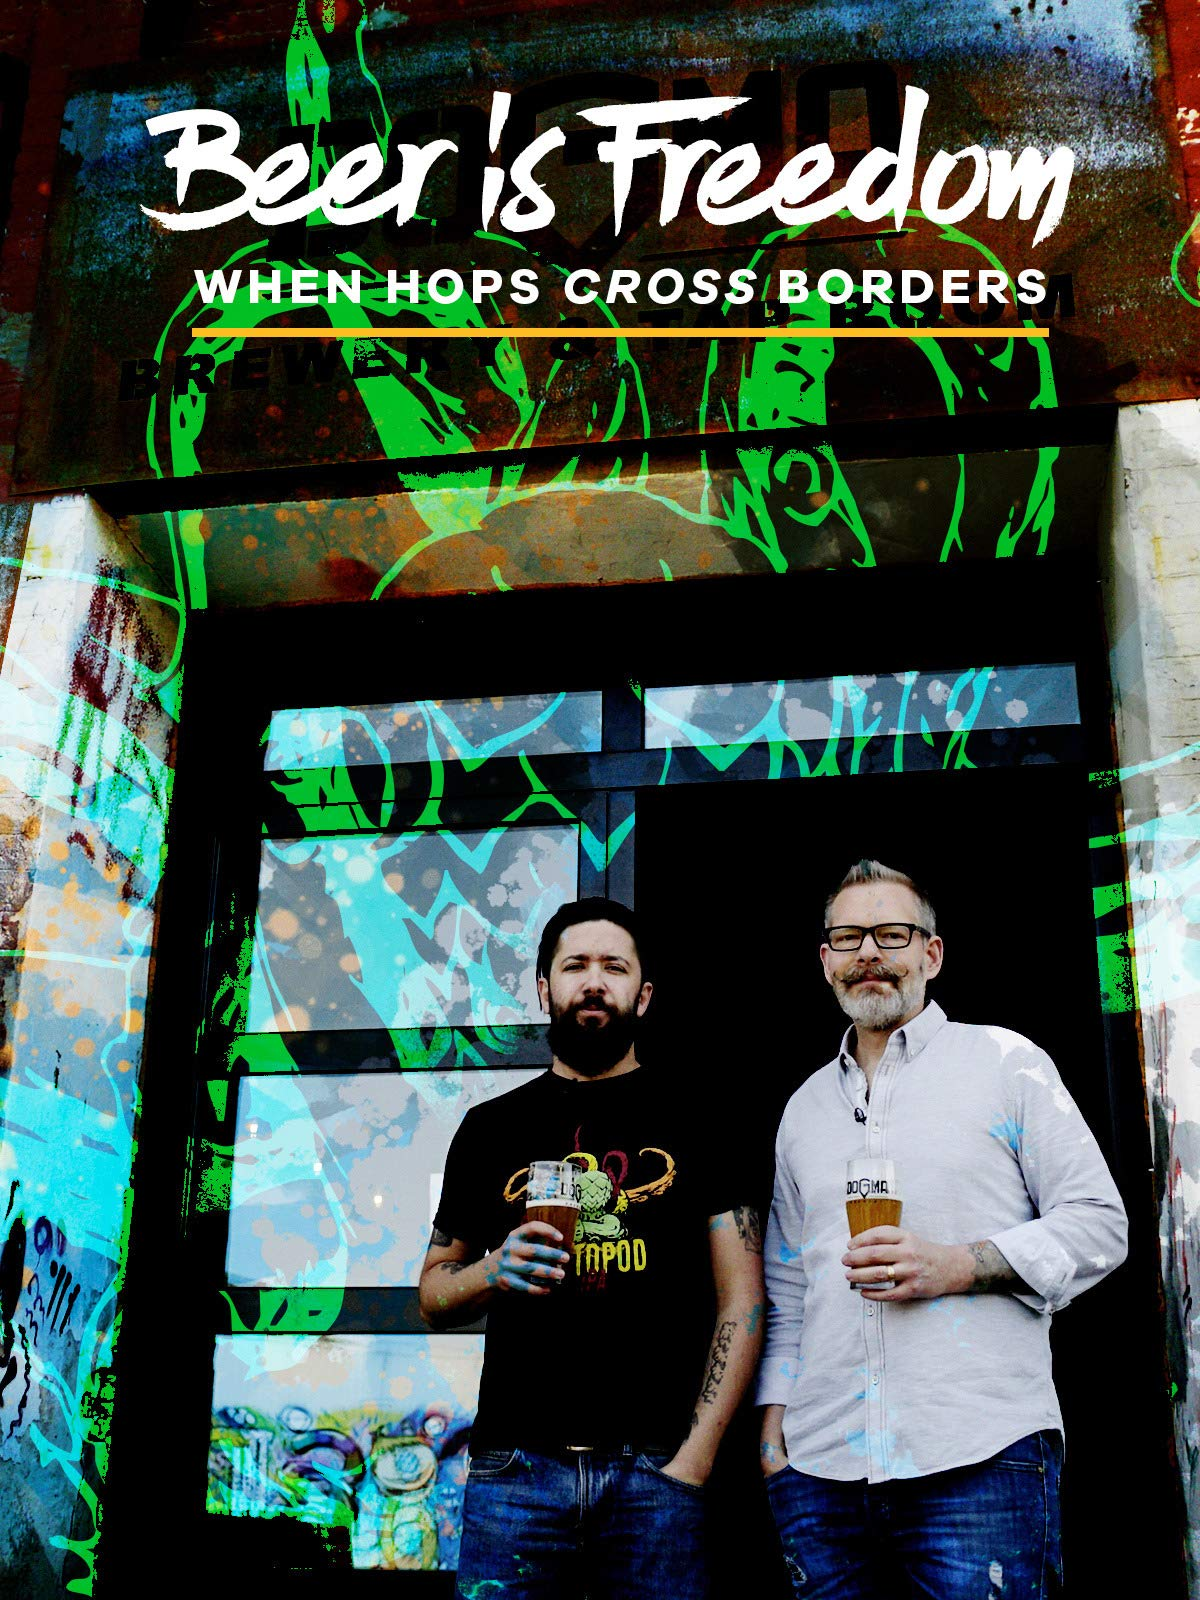 Beer is Freedom: When Hops Cross Borders